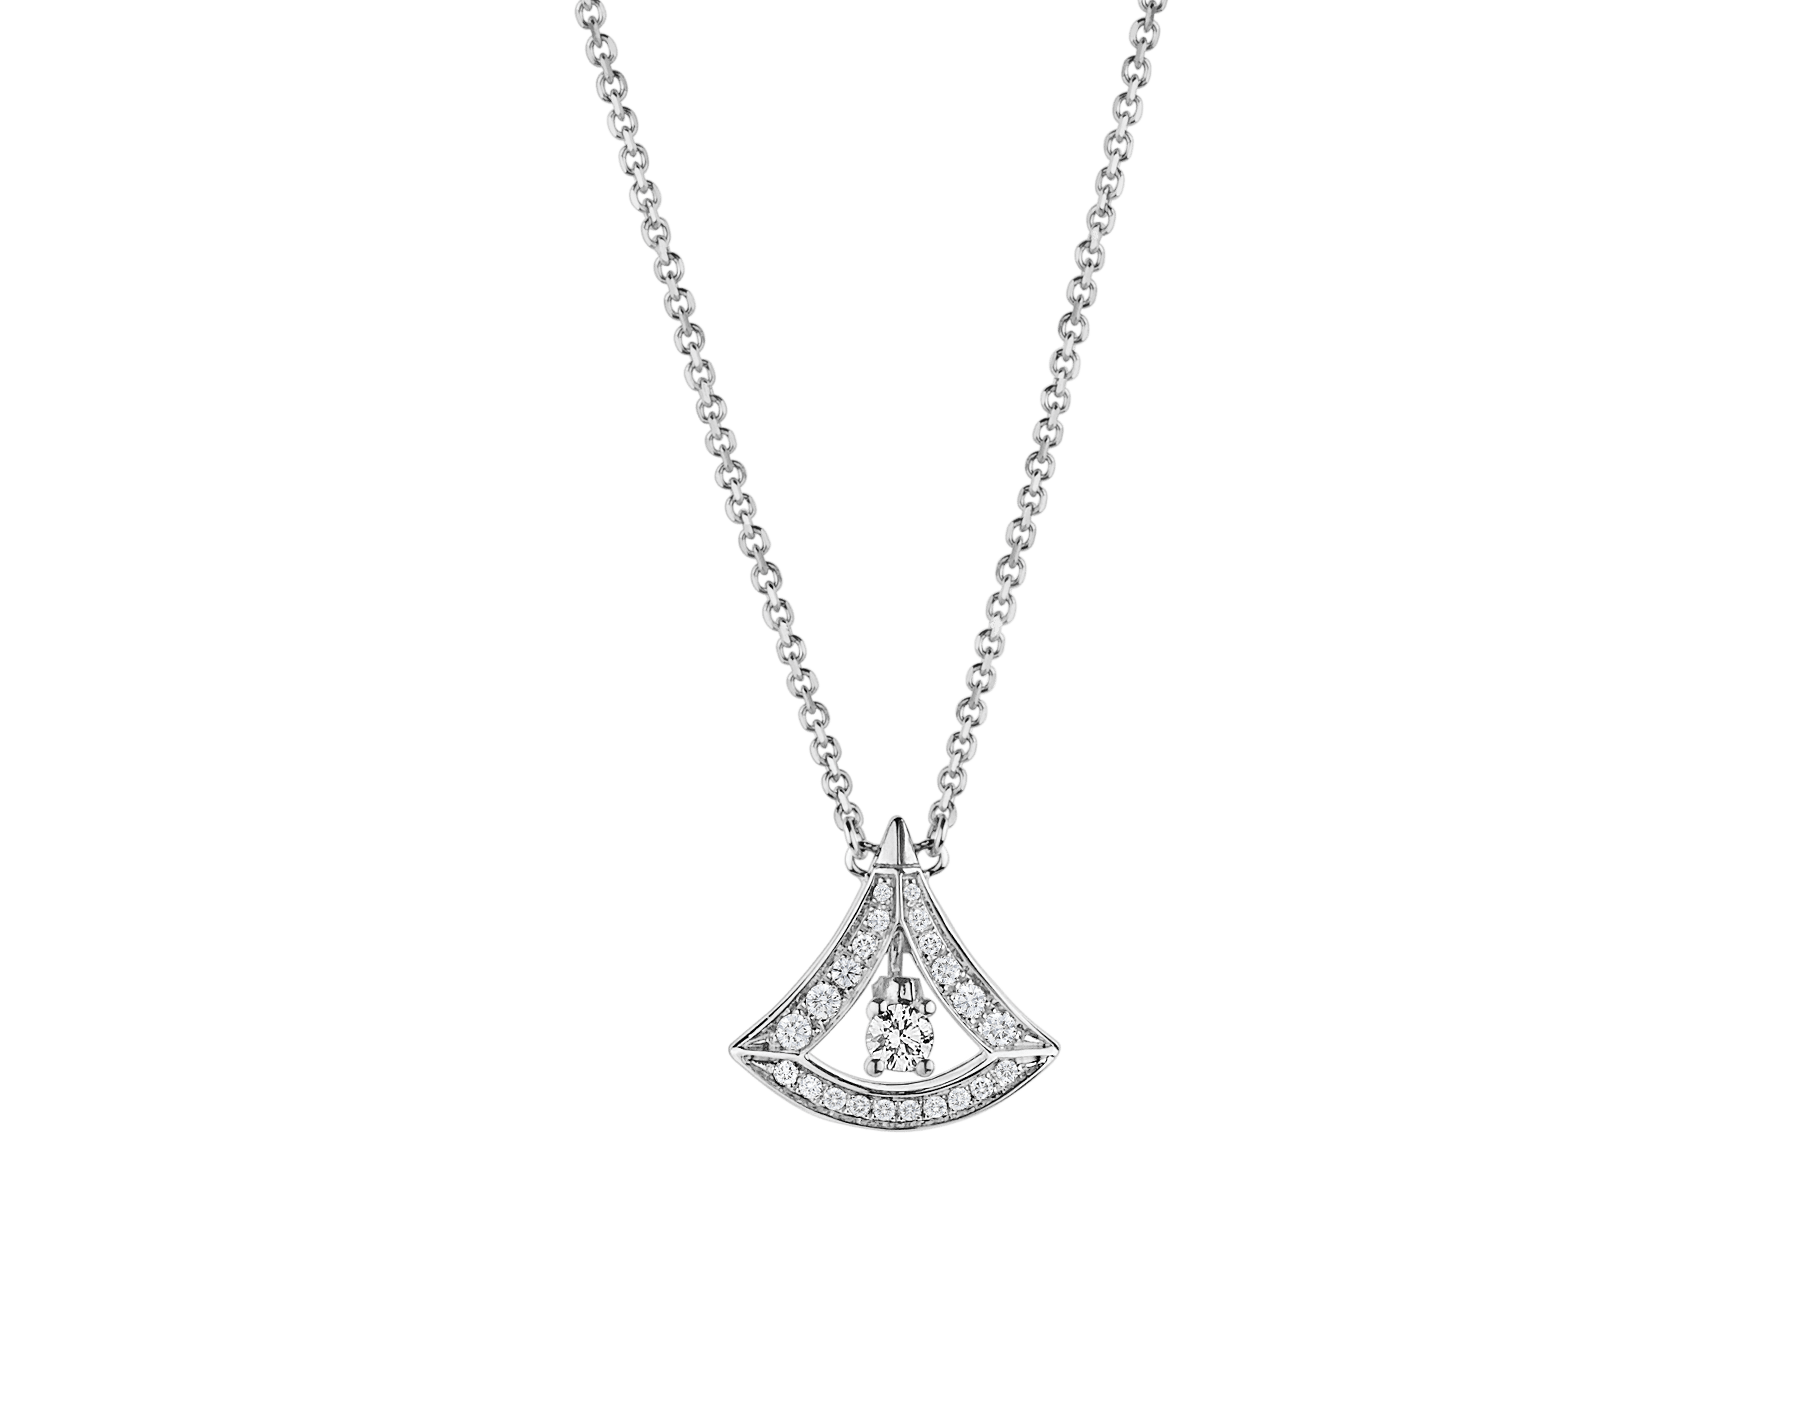 DIVAS' DREAM openwork necklace in 18 kt white gold with 18 kt white gold pendant set with a central diamond and pavé diamonds. 354049 image 1